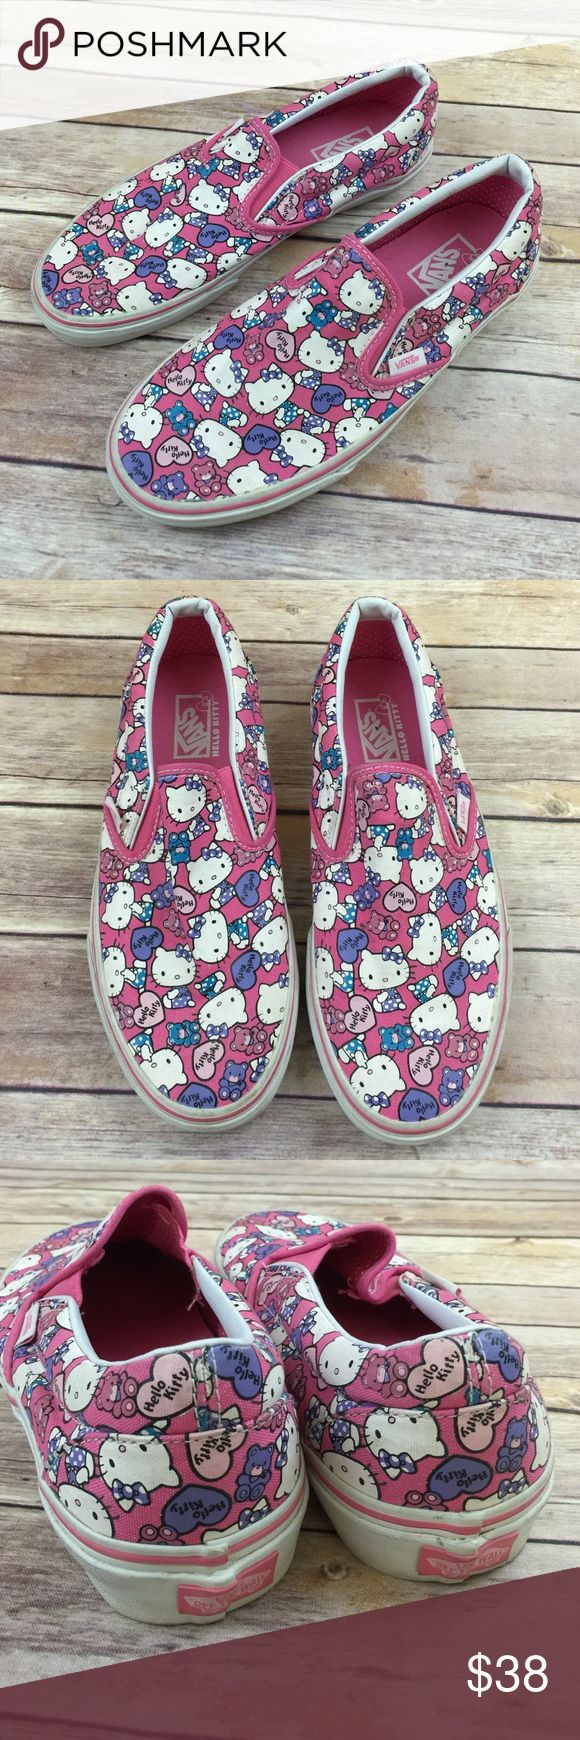 Vans Hello Kitty Slide On Tennis Shoes Excellent condition. Worn once.  Woman's 9 Vans Shoes Sneakers